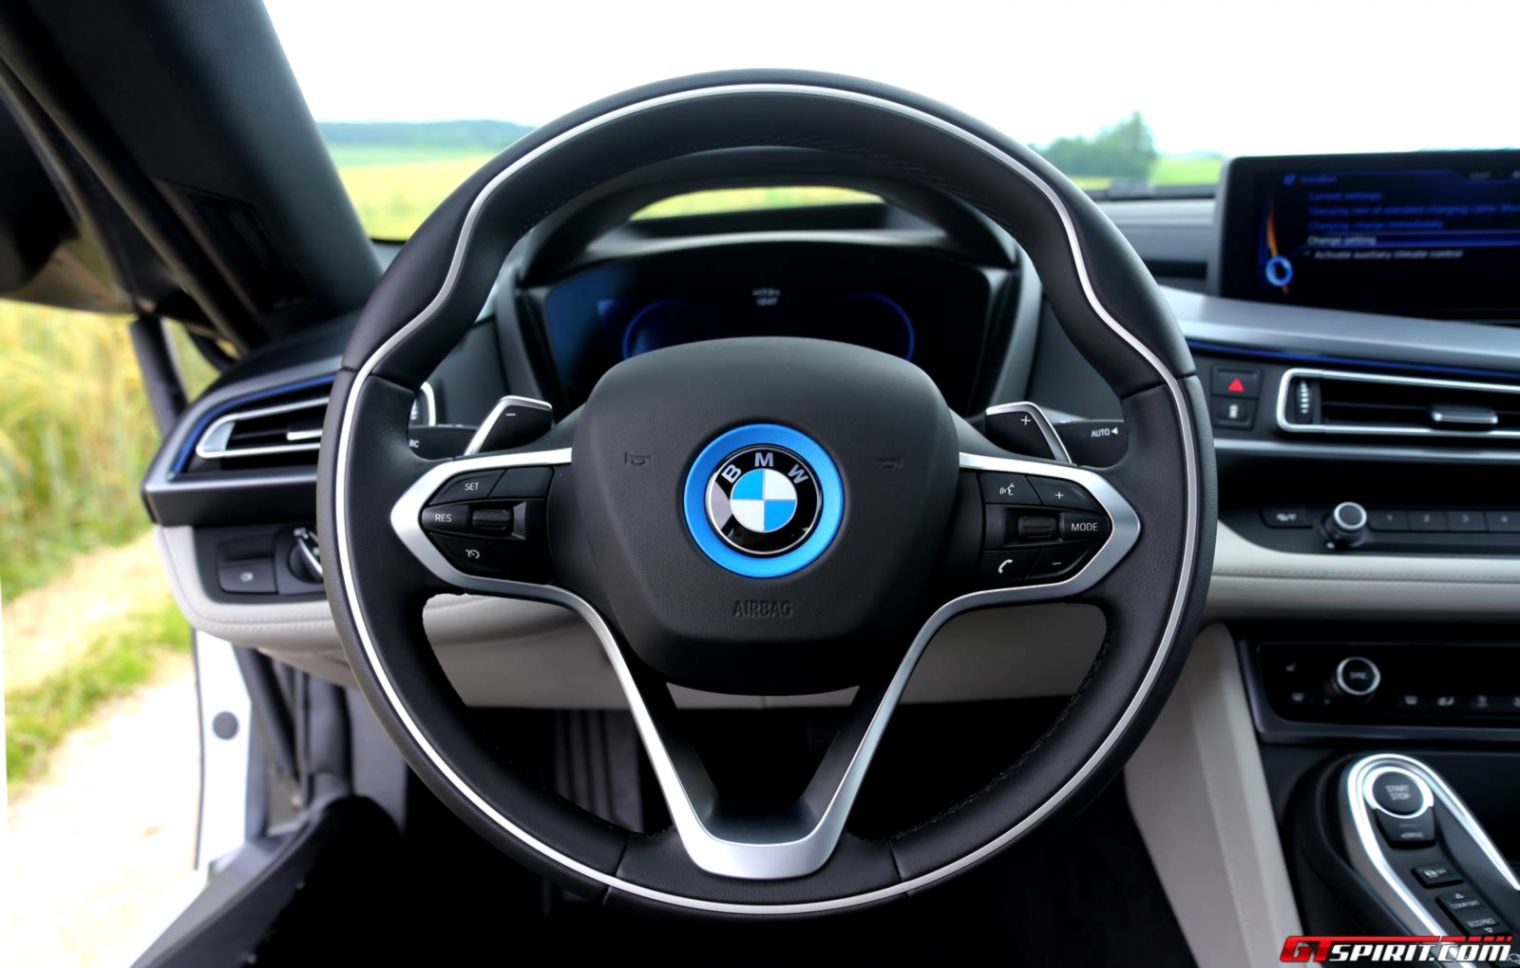 Bmw I8 Interieur Bmw I8 Interior Widescreen Wallpapers Background